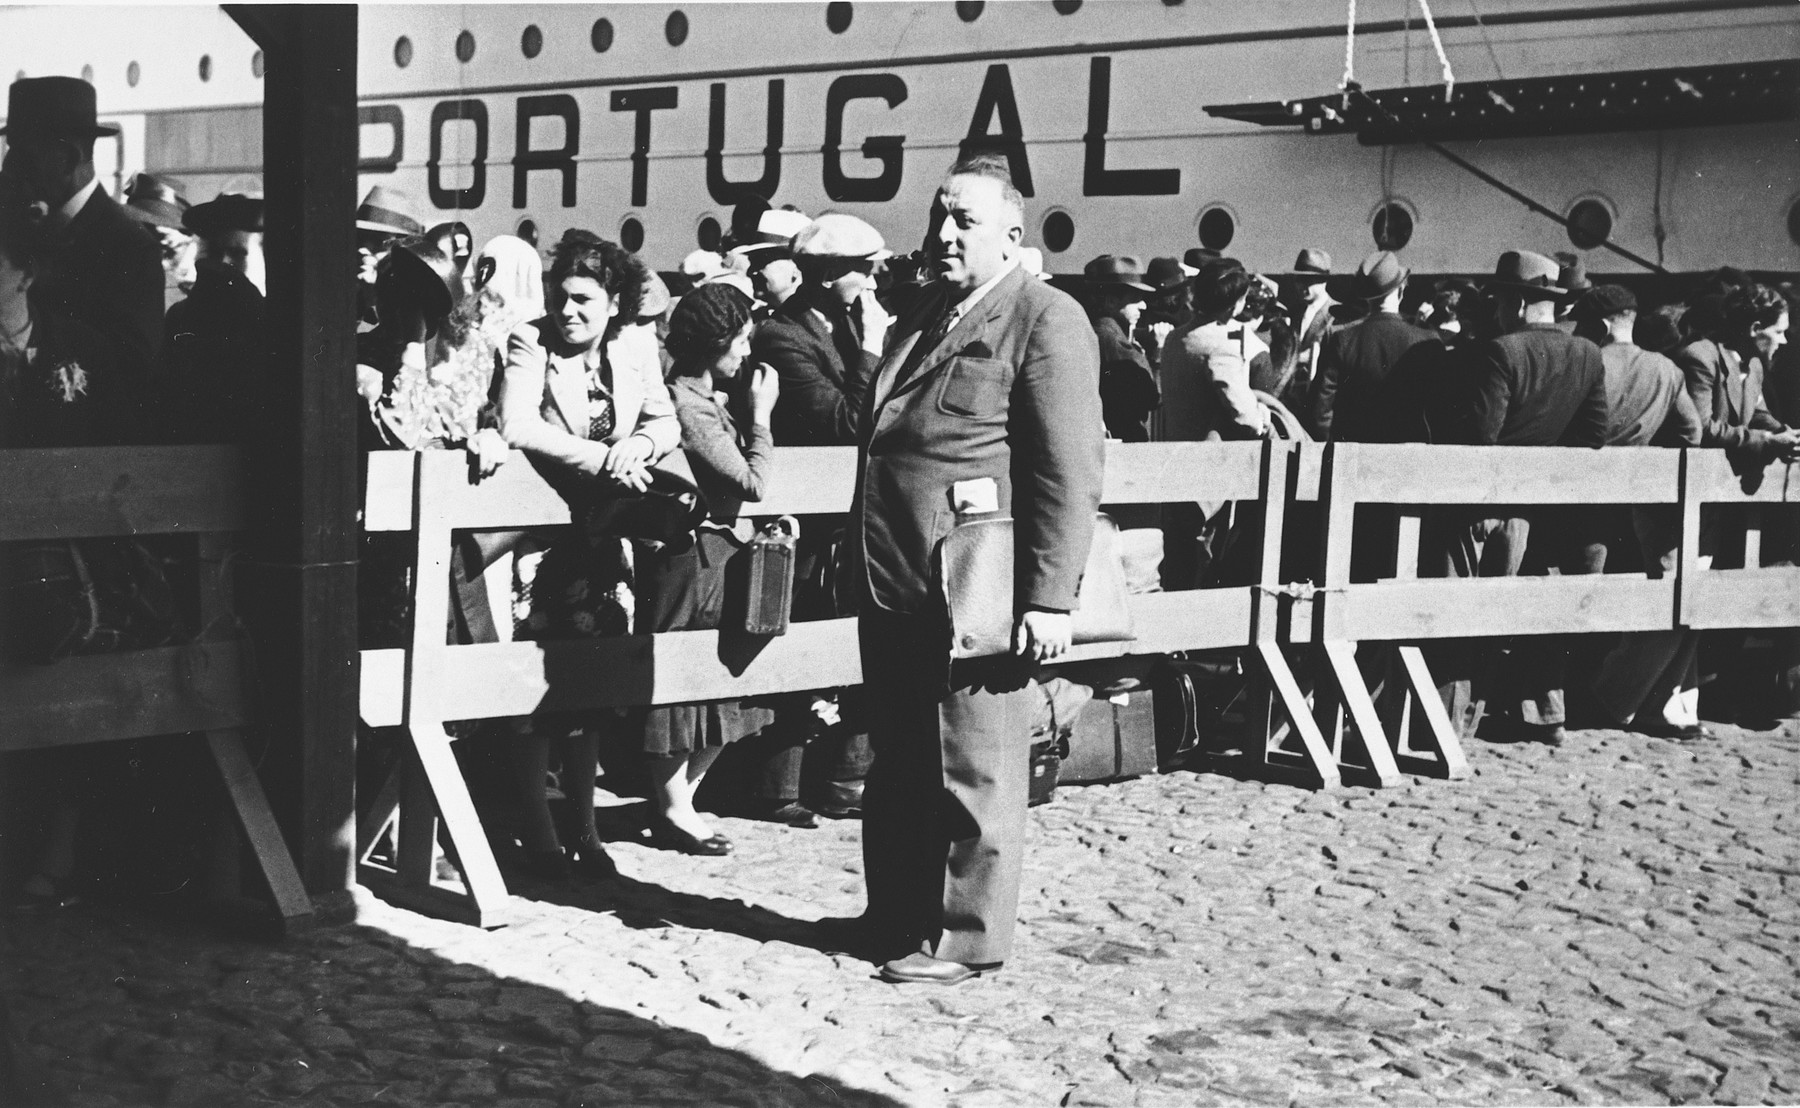 Albert Nussbaum, Director of Transmigration for the American Joint Distribution Committee, poses in the port of Lisbon in front of a wooden fence that cordons off the Jewish refugees who are waiting to board the SS Mouzinho.